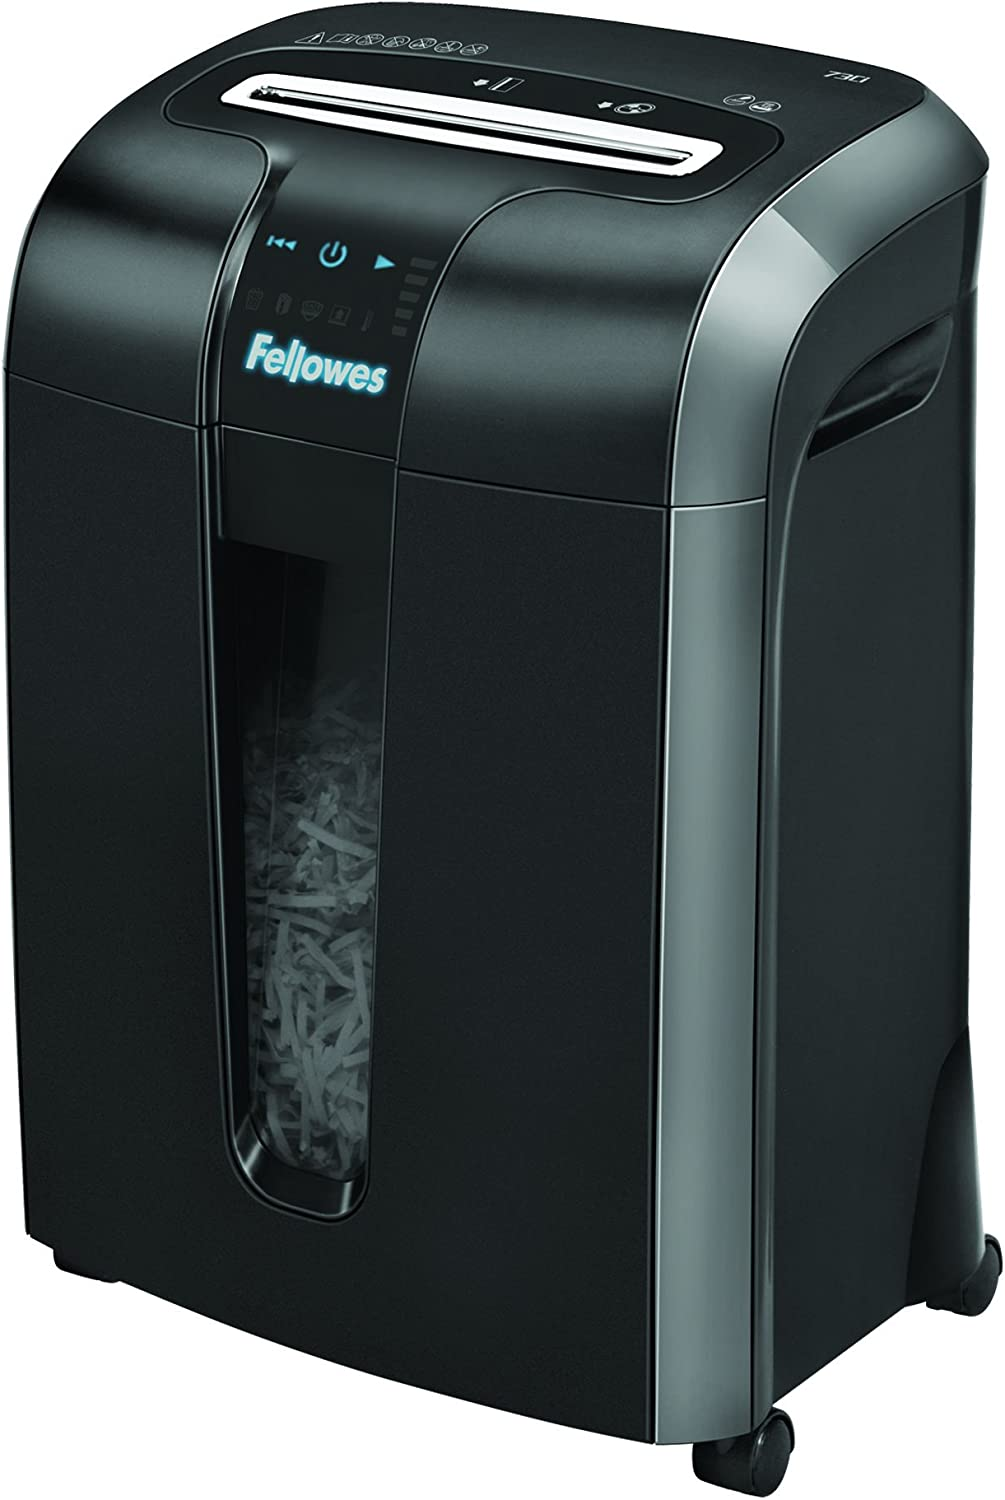 5.Fellowes Powershred Jam Proof Paper and Credit Card Shredder